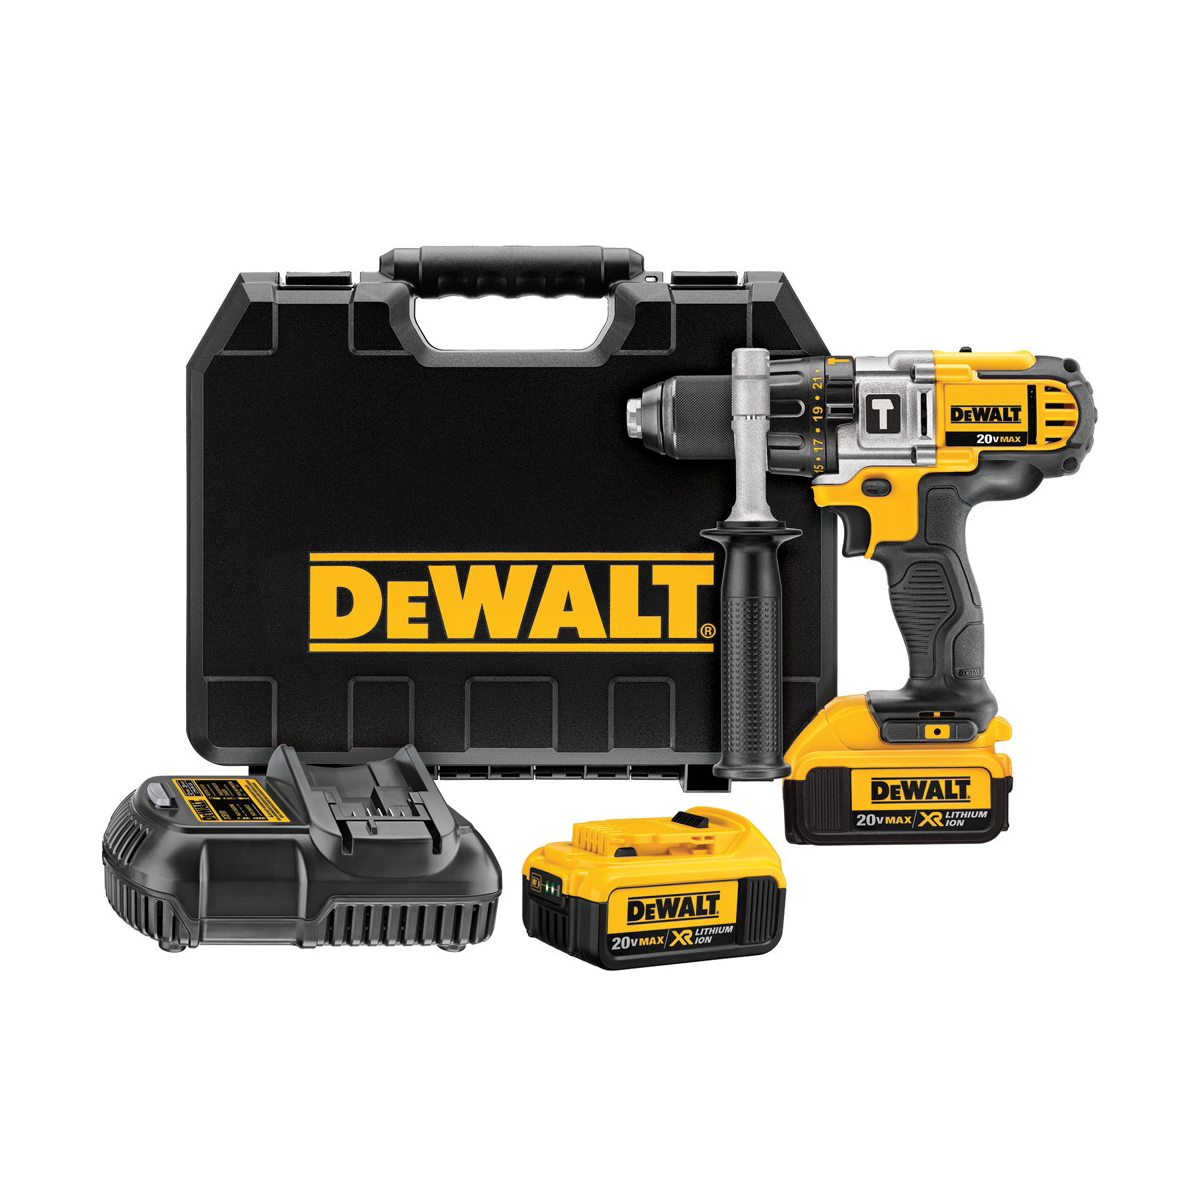 DeWALT® DCD985M2 3-Speed Premium Cordless Hammer Drill Kit, 1/2 in Metal Ratcheting Chuck, 20 VDC, 0 to 575/0 to 1350/0 to 2000 rpm No-Load, Lithium-Ion Battery